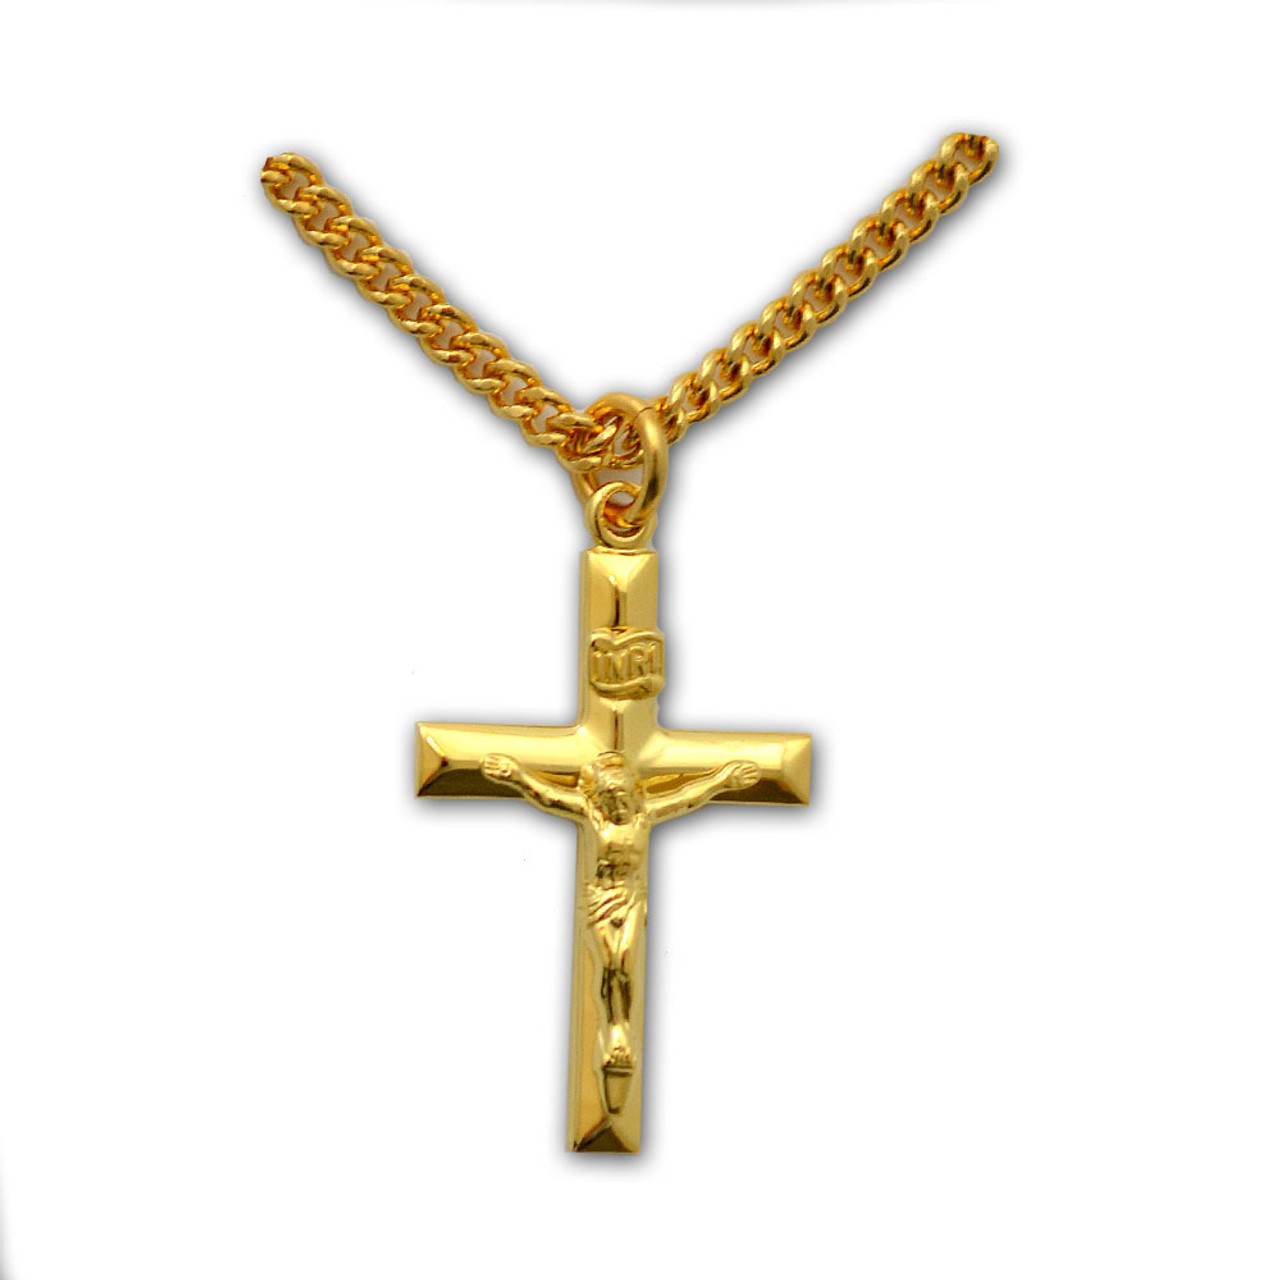 Gold-Filled Men's Crucifix Necklace, 24 inch chain